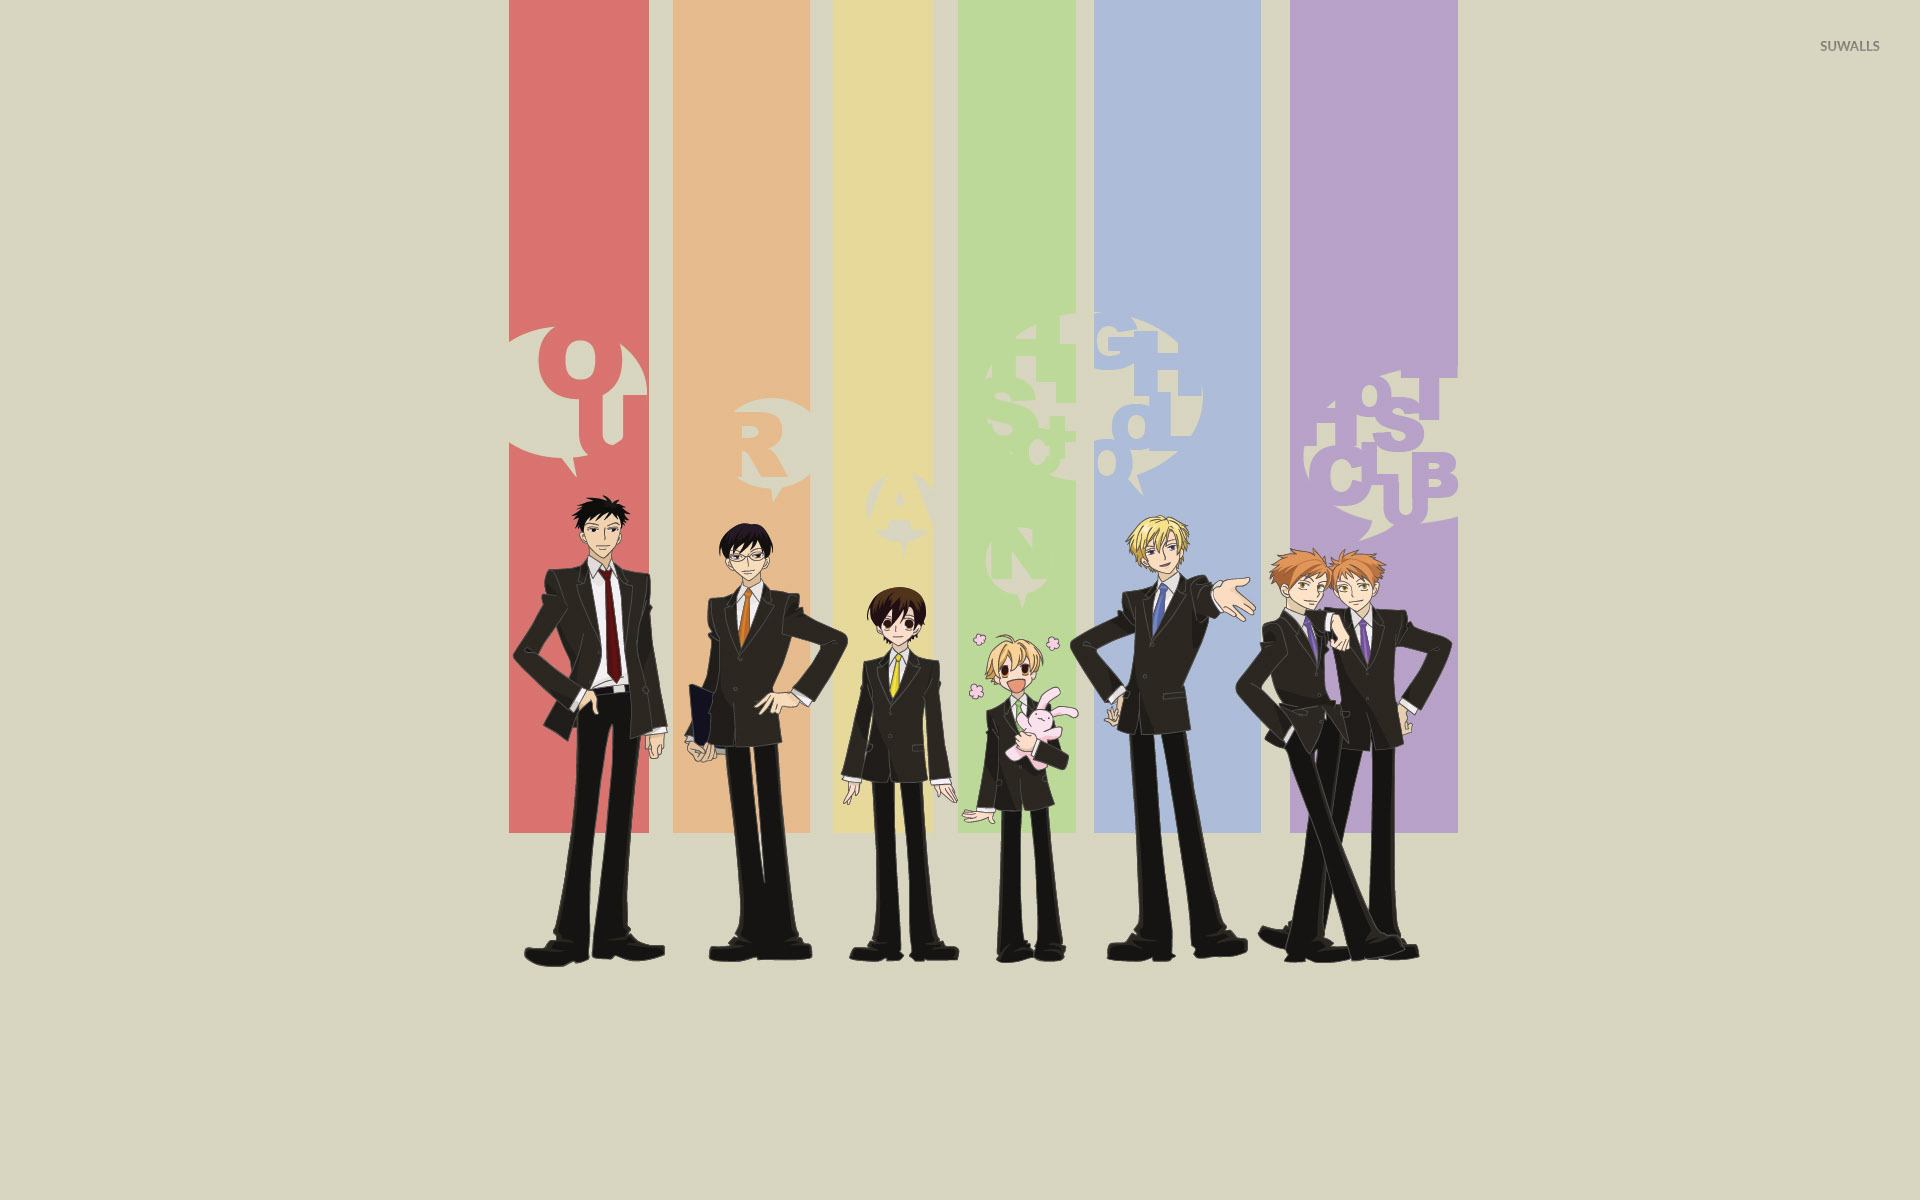 Ouran High School Host Club 2 Wallpaper Anime Wallpapers 29256